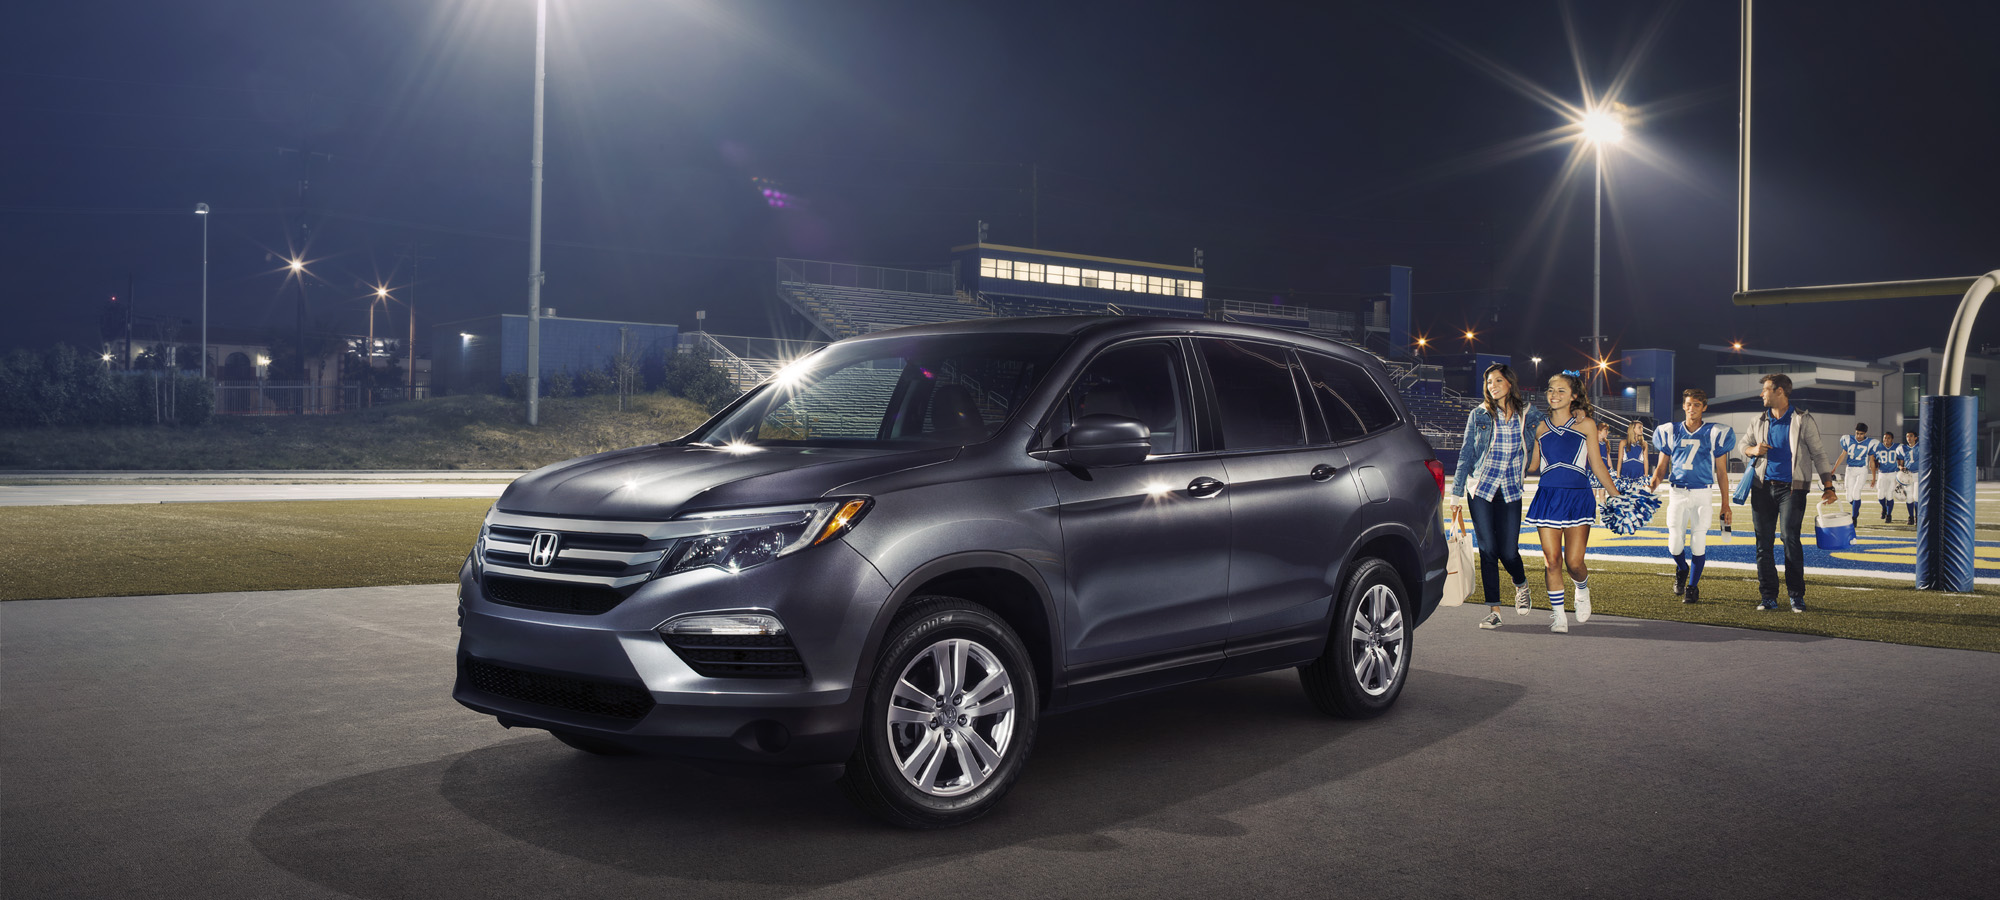 2016 Honda Pilot AWD For Sale in Milwaukee, WI